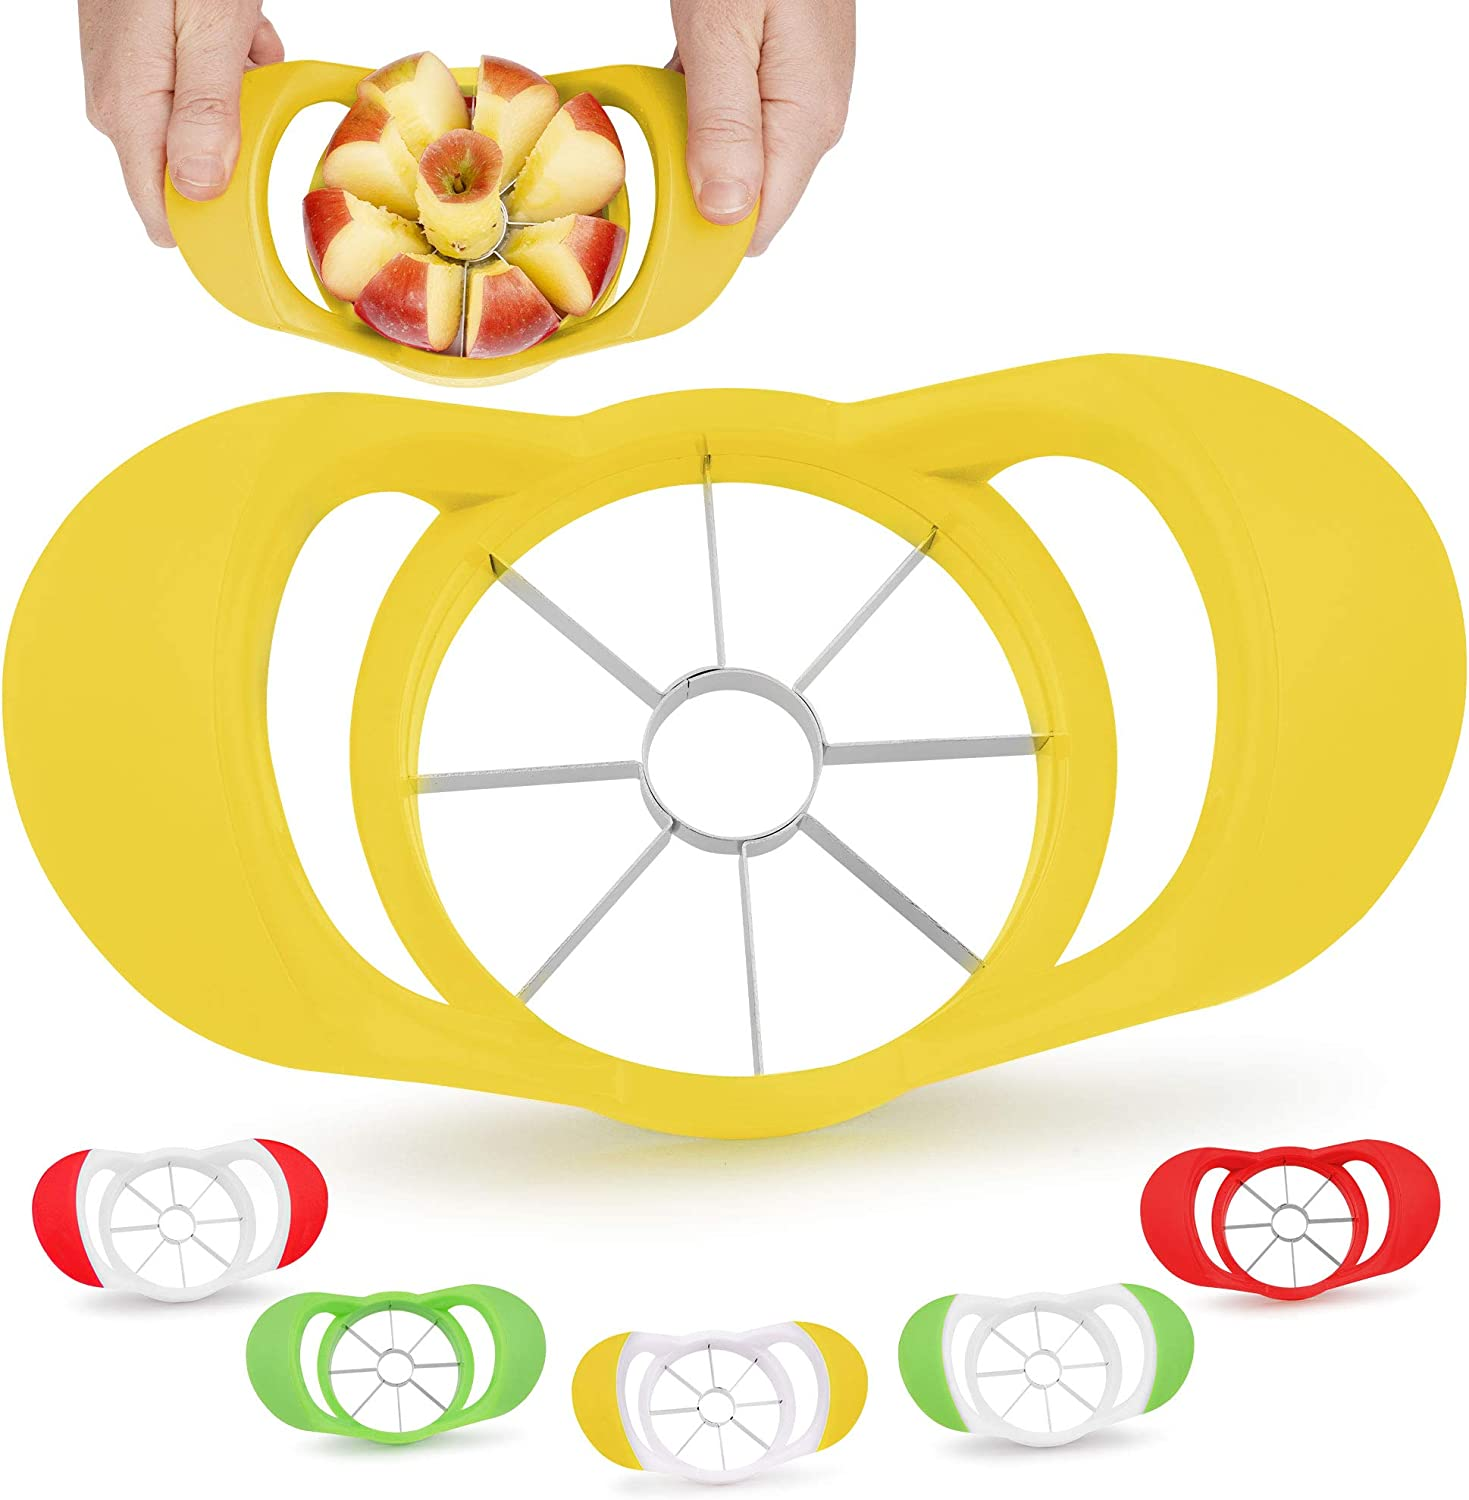 Zulay 8 Blade Apple Slicer - Easy Grip Apple Cutter With Stainless Steel Blades - Fast Usage Apple Corer And Slicer Tool That Saves Time & Effort (Yellow)